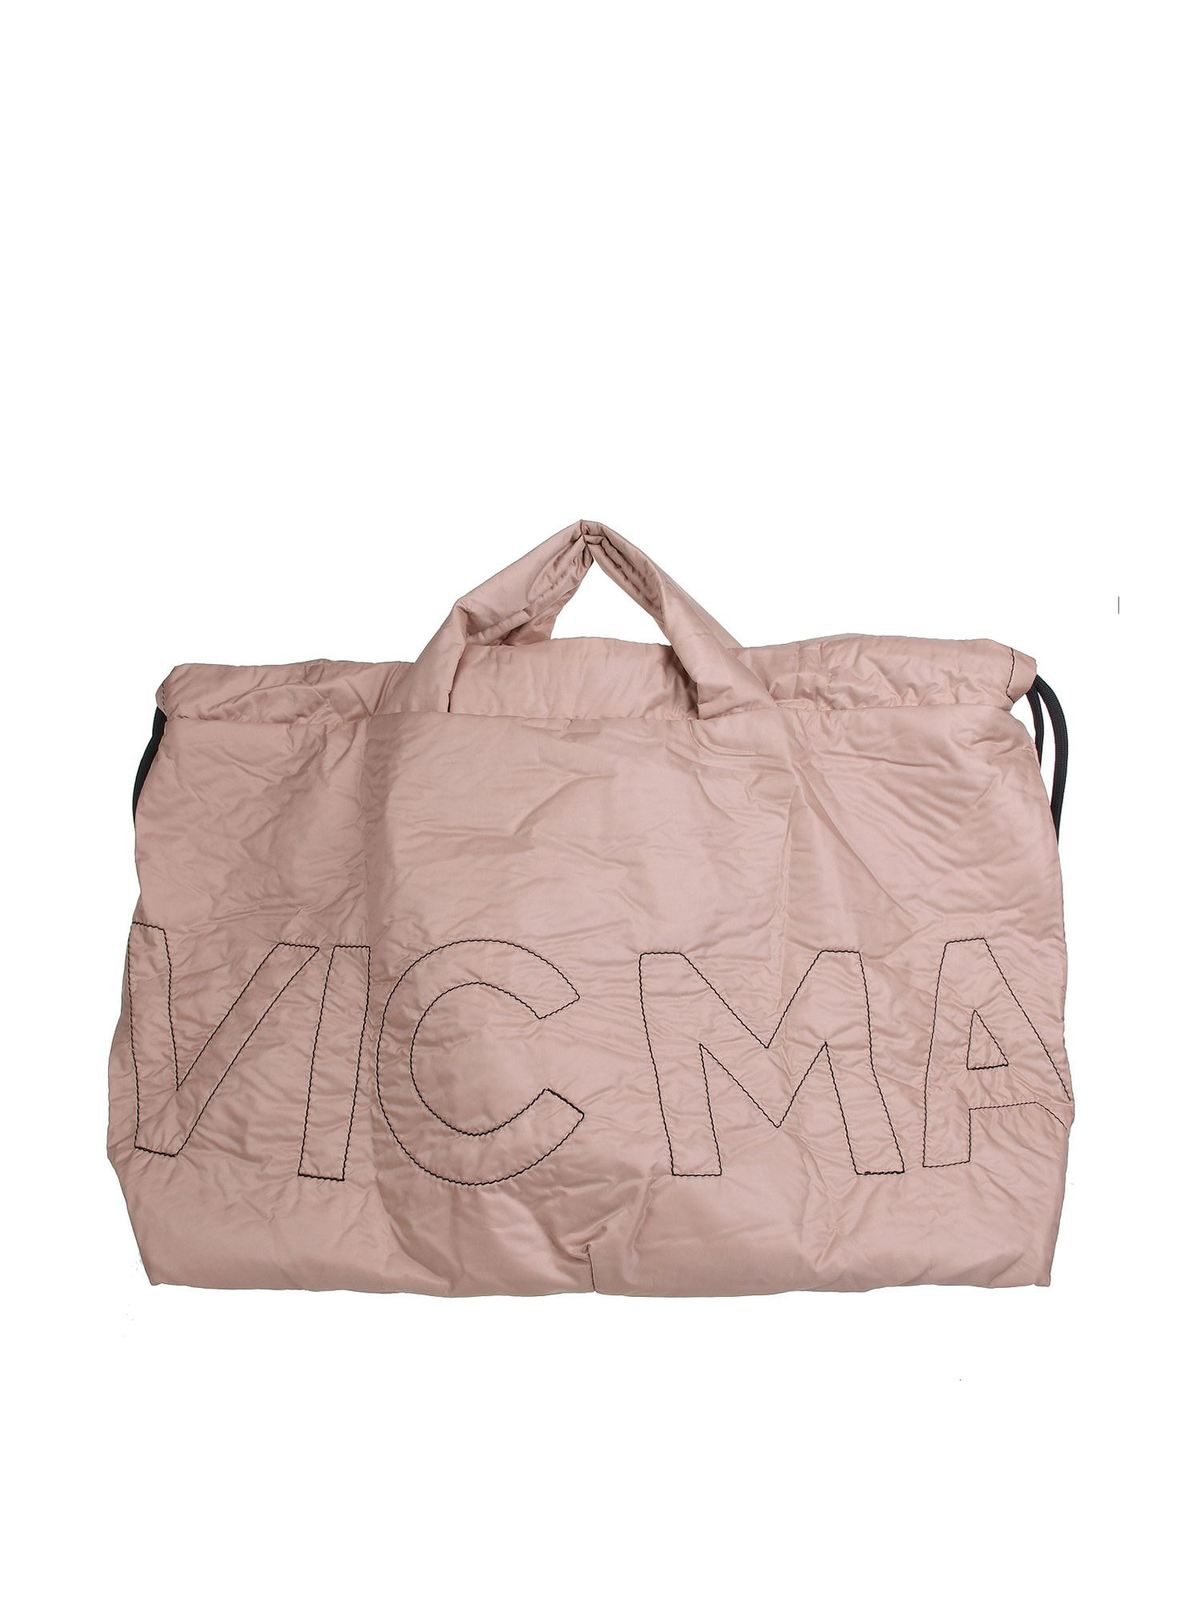 Vic Matie PENELOPE SHOPPING BAG IN PINK